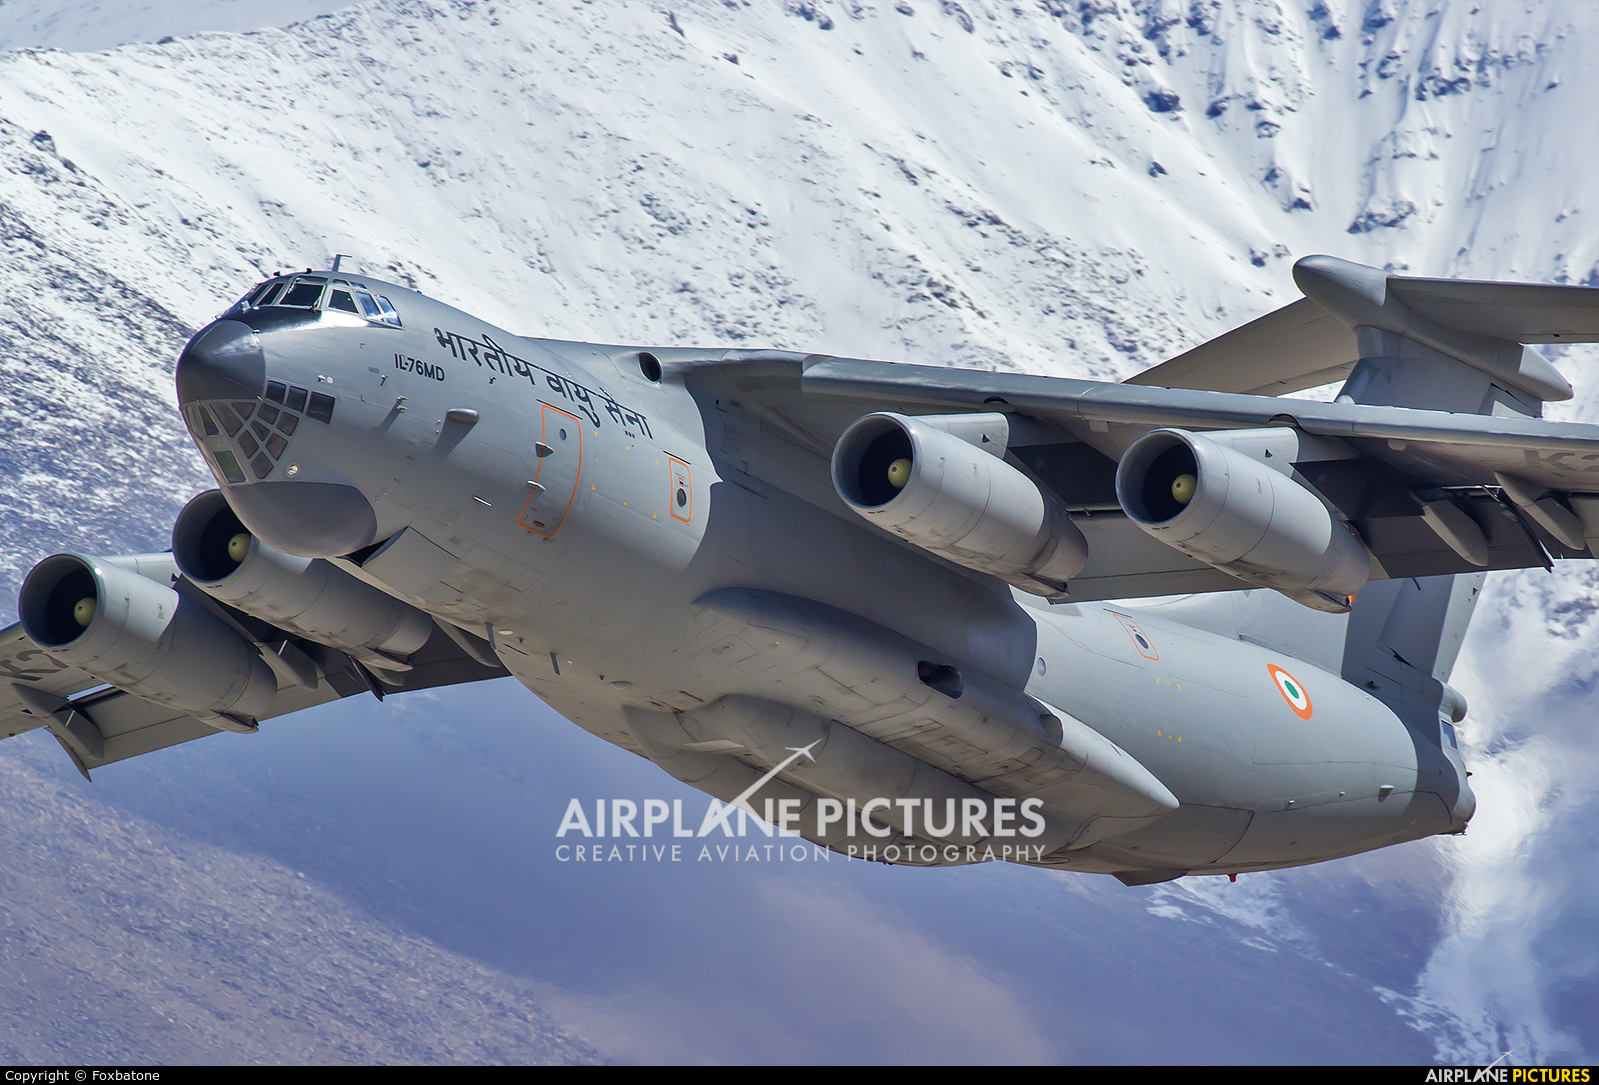 India - Air Force K2663 aircraft at Undisclosed location